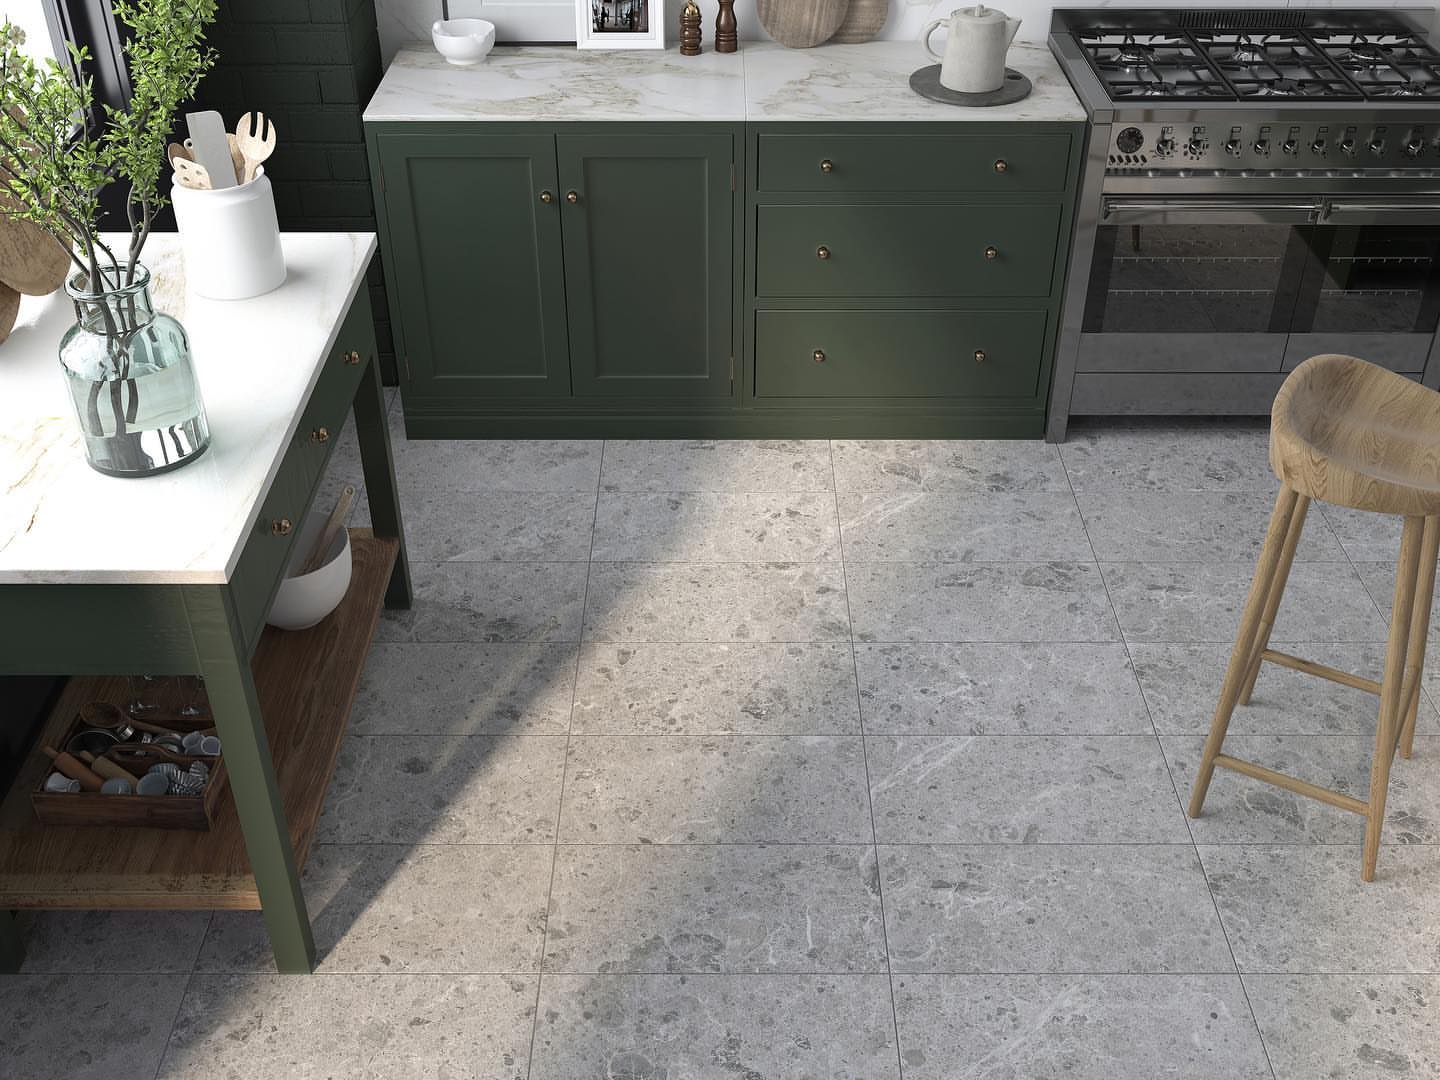 Selecting a Tile for your floor